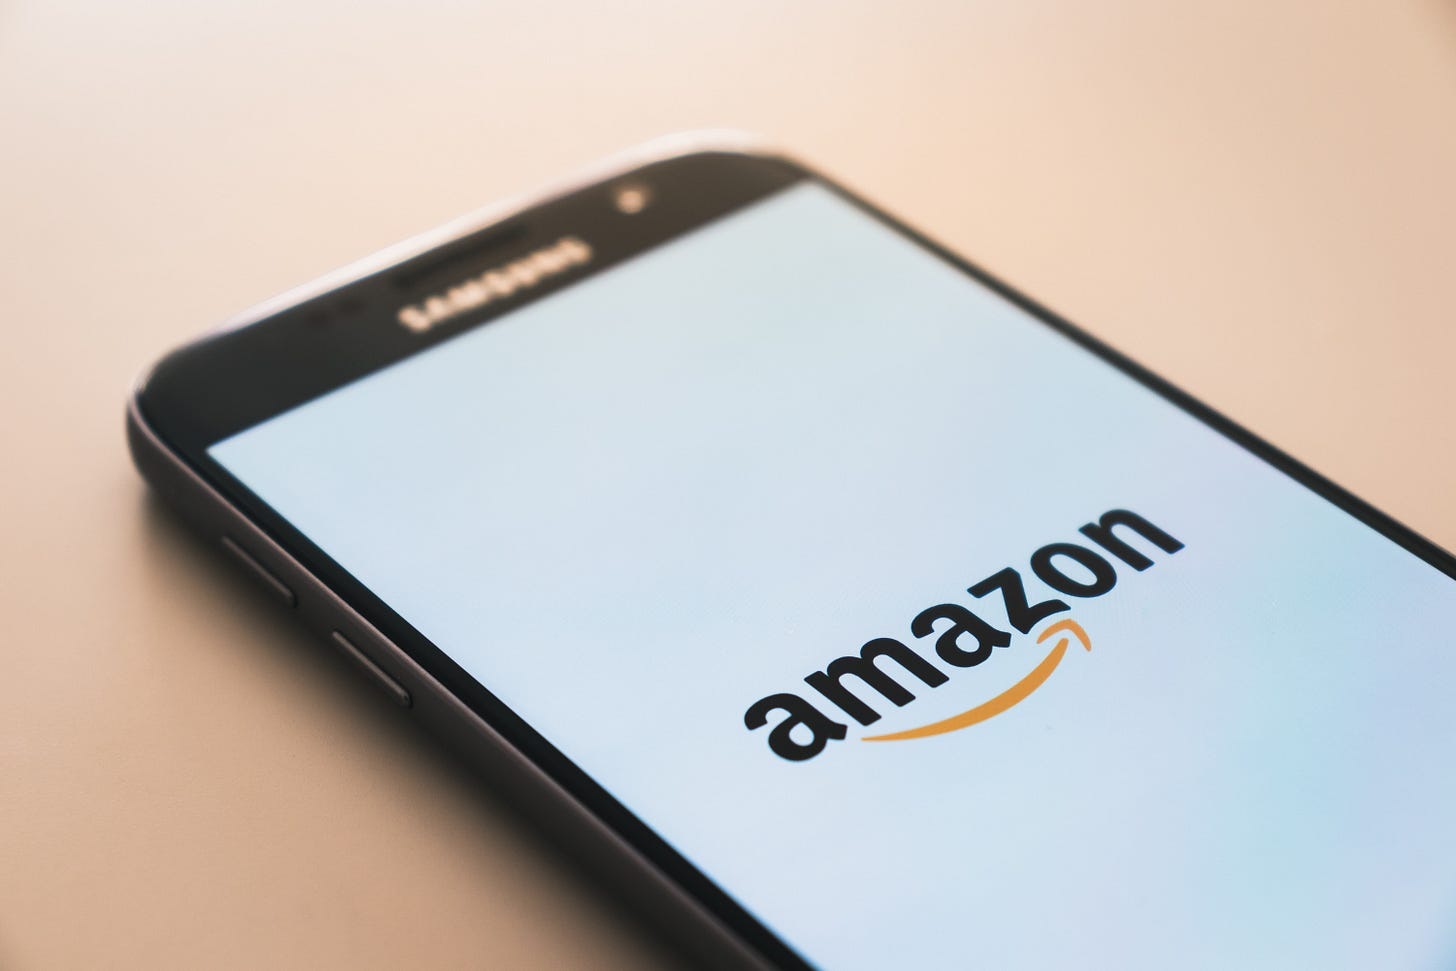 Picture of Amazon on Samsung phone